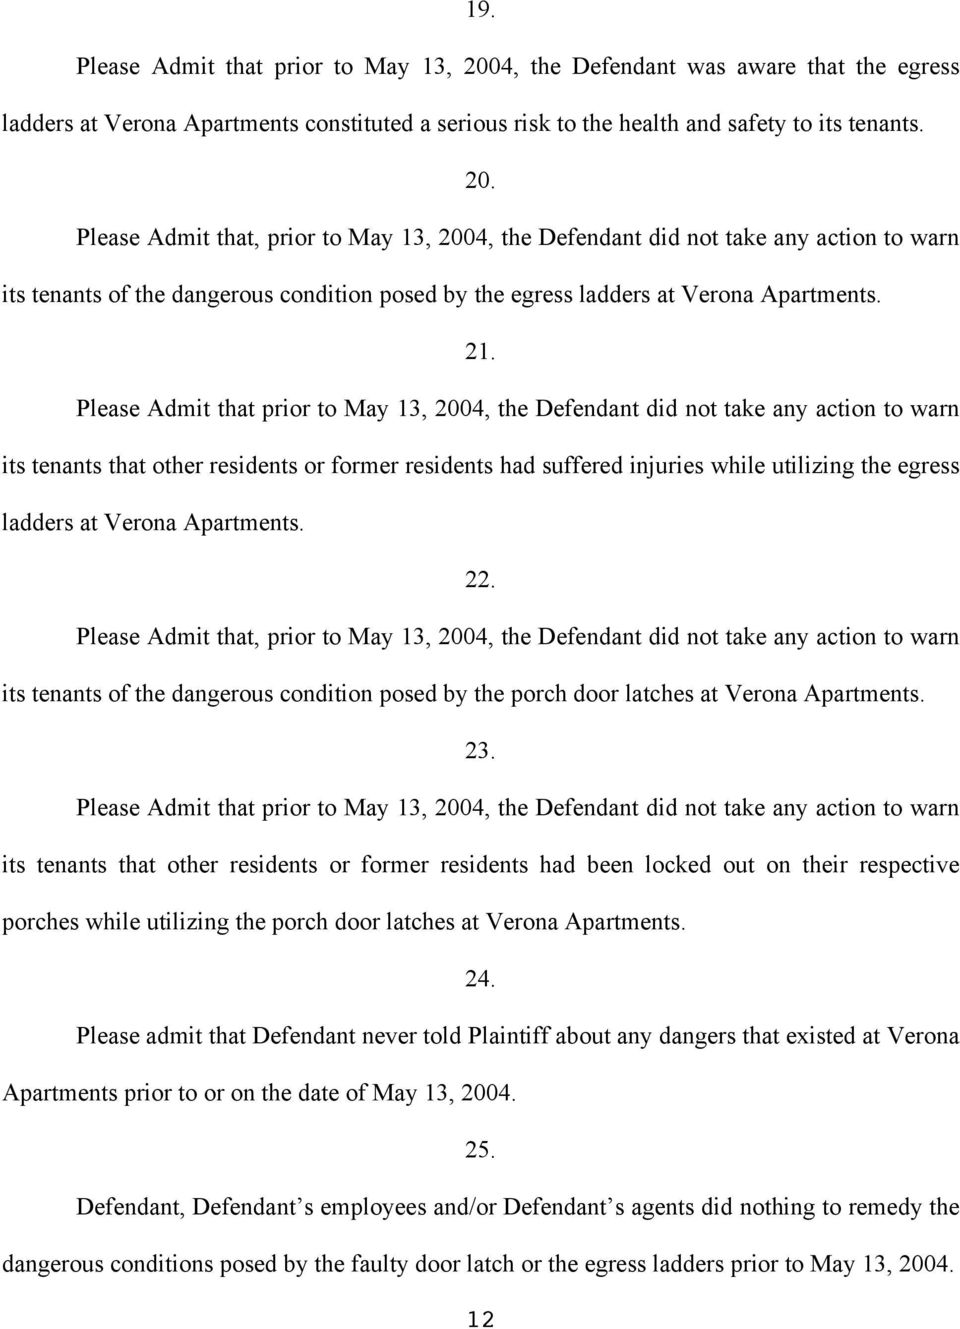 Please Admit that, prior to May 13, 2004, the Defendant did not take any action to warn its tenants of the dangerous condition posed by the egress ladders at Verona Apartments. 21.